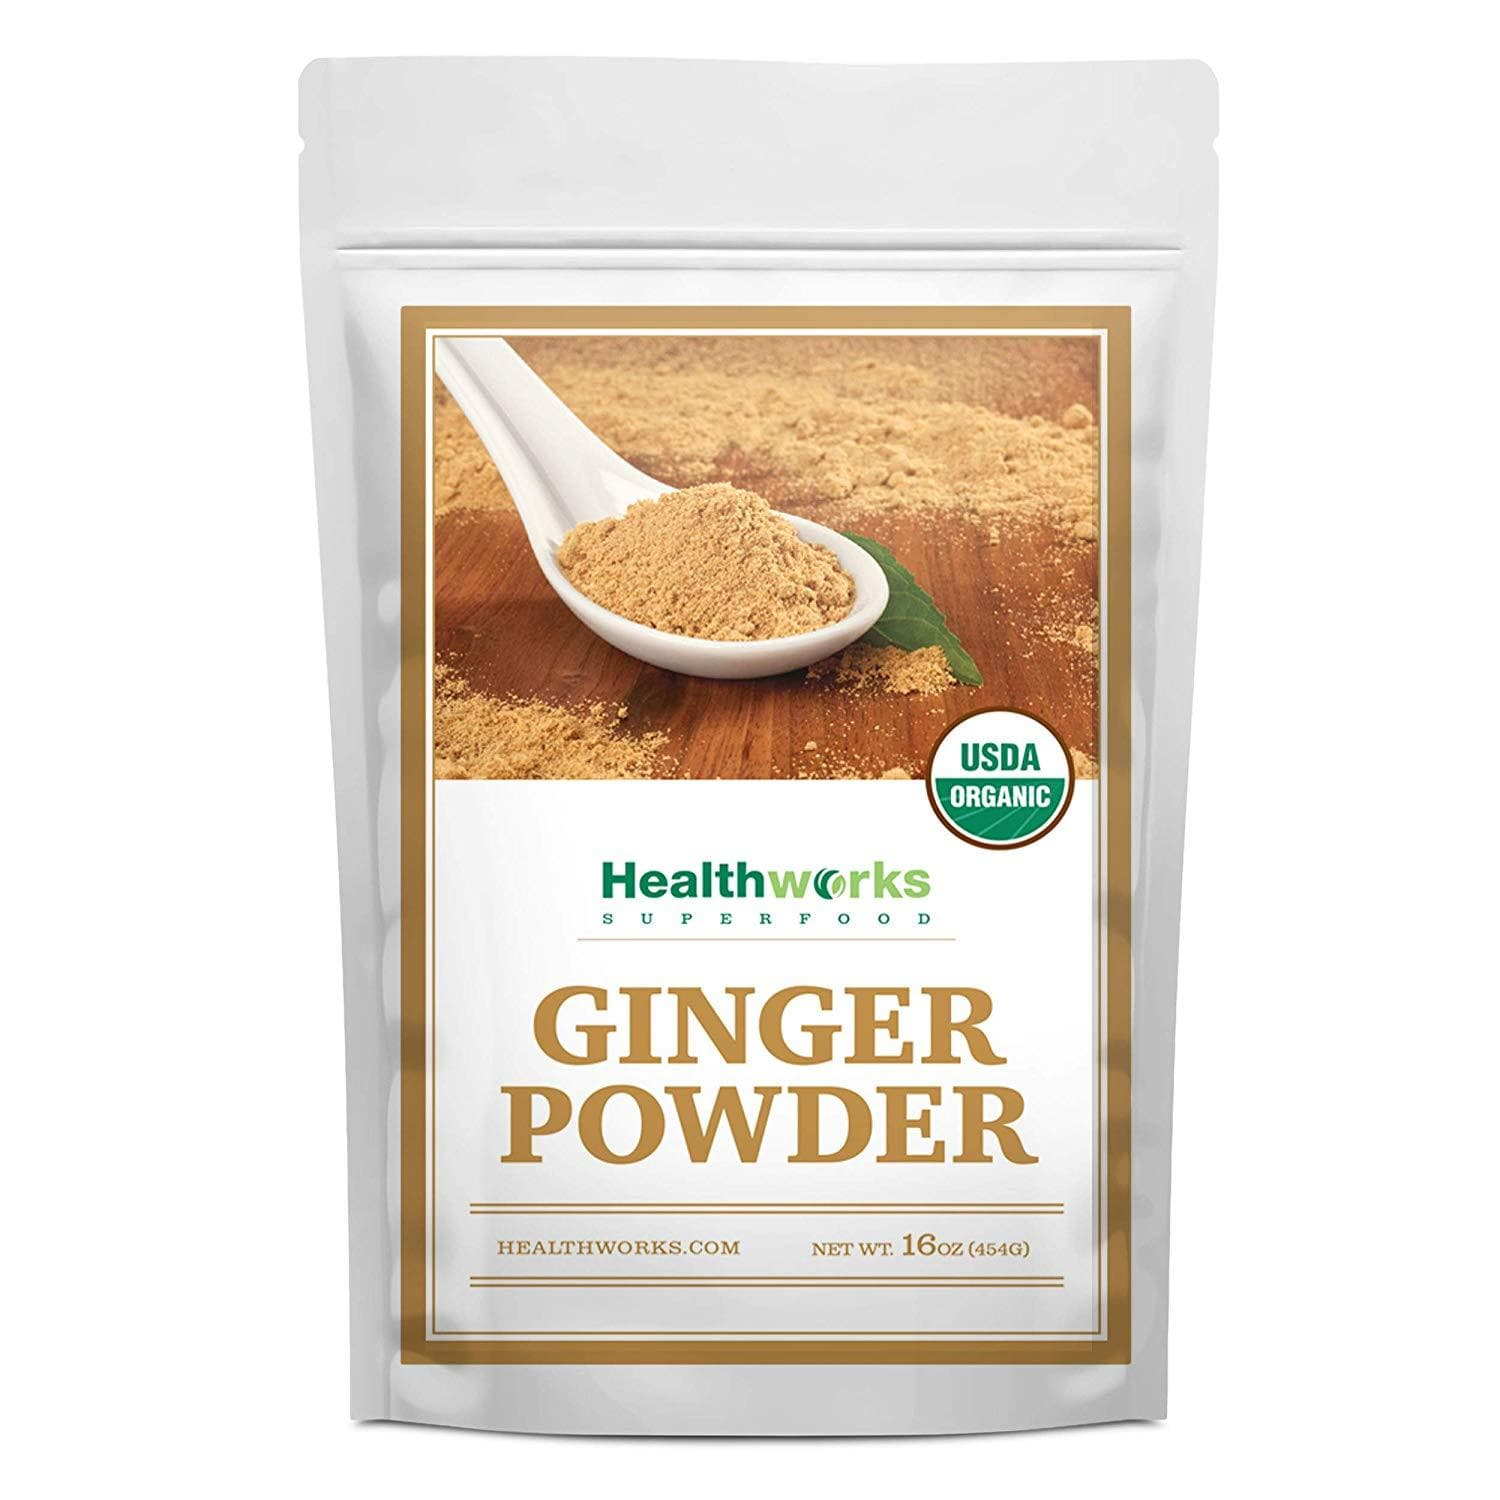 Healthworks Ginger Powder Raw Organic, 1lb - Healthworks Superfood Organic